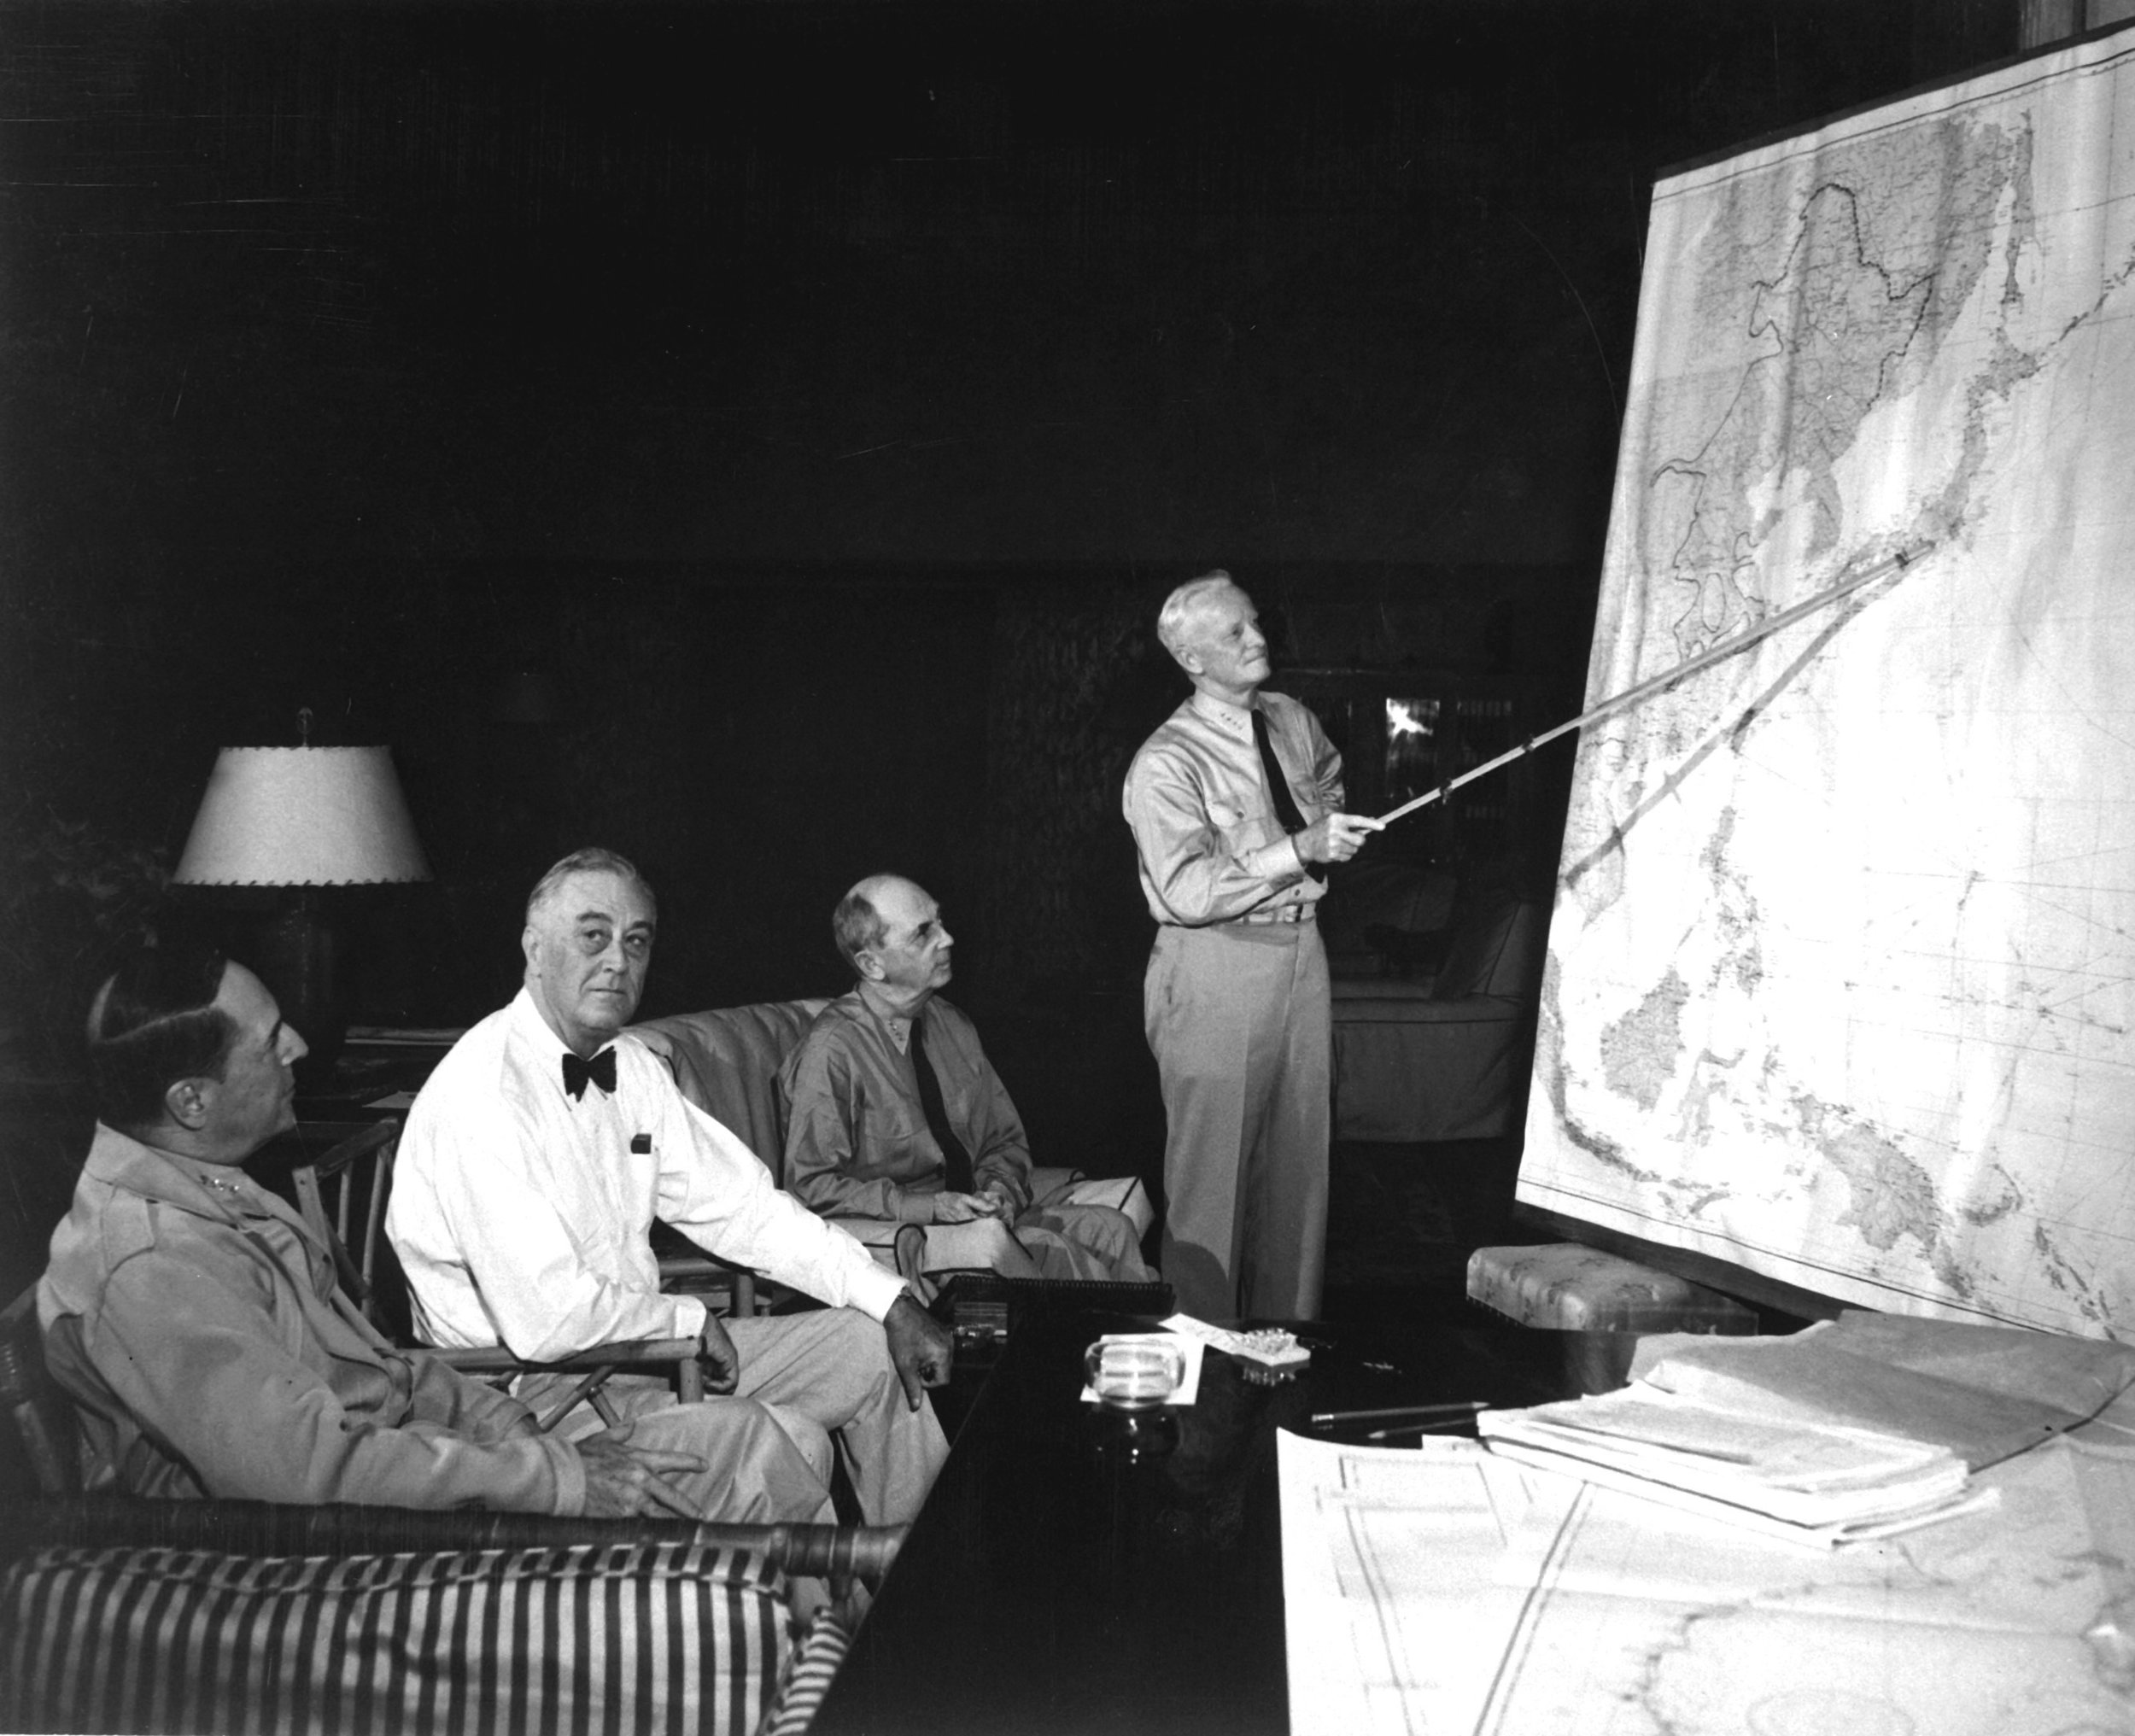 Admiral Nimitz, commander of Eastern Pacific, briefs President Roosevelt, Admiral Leahy, and General MacArthur, commander of the Western Pacific, on operations advancing toward Japan. (Wikimedia)